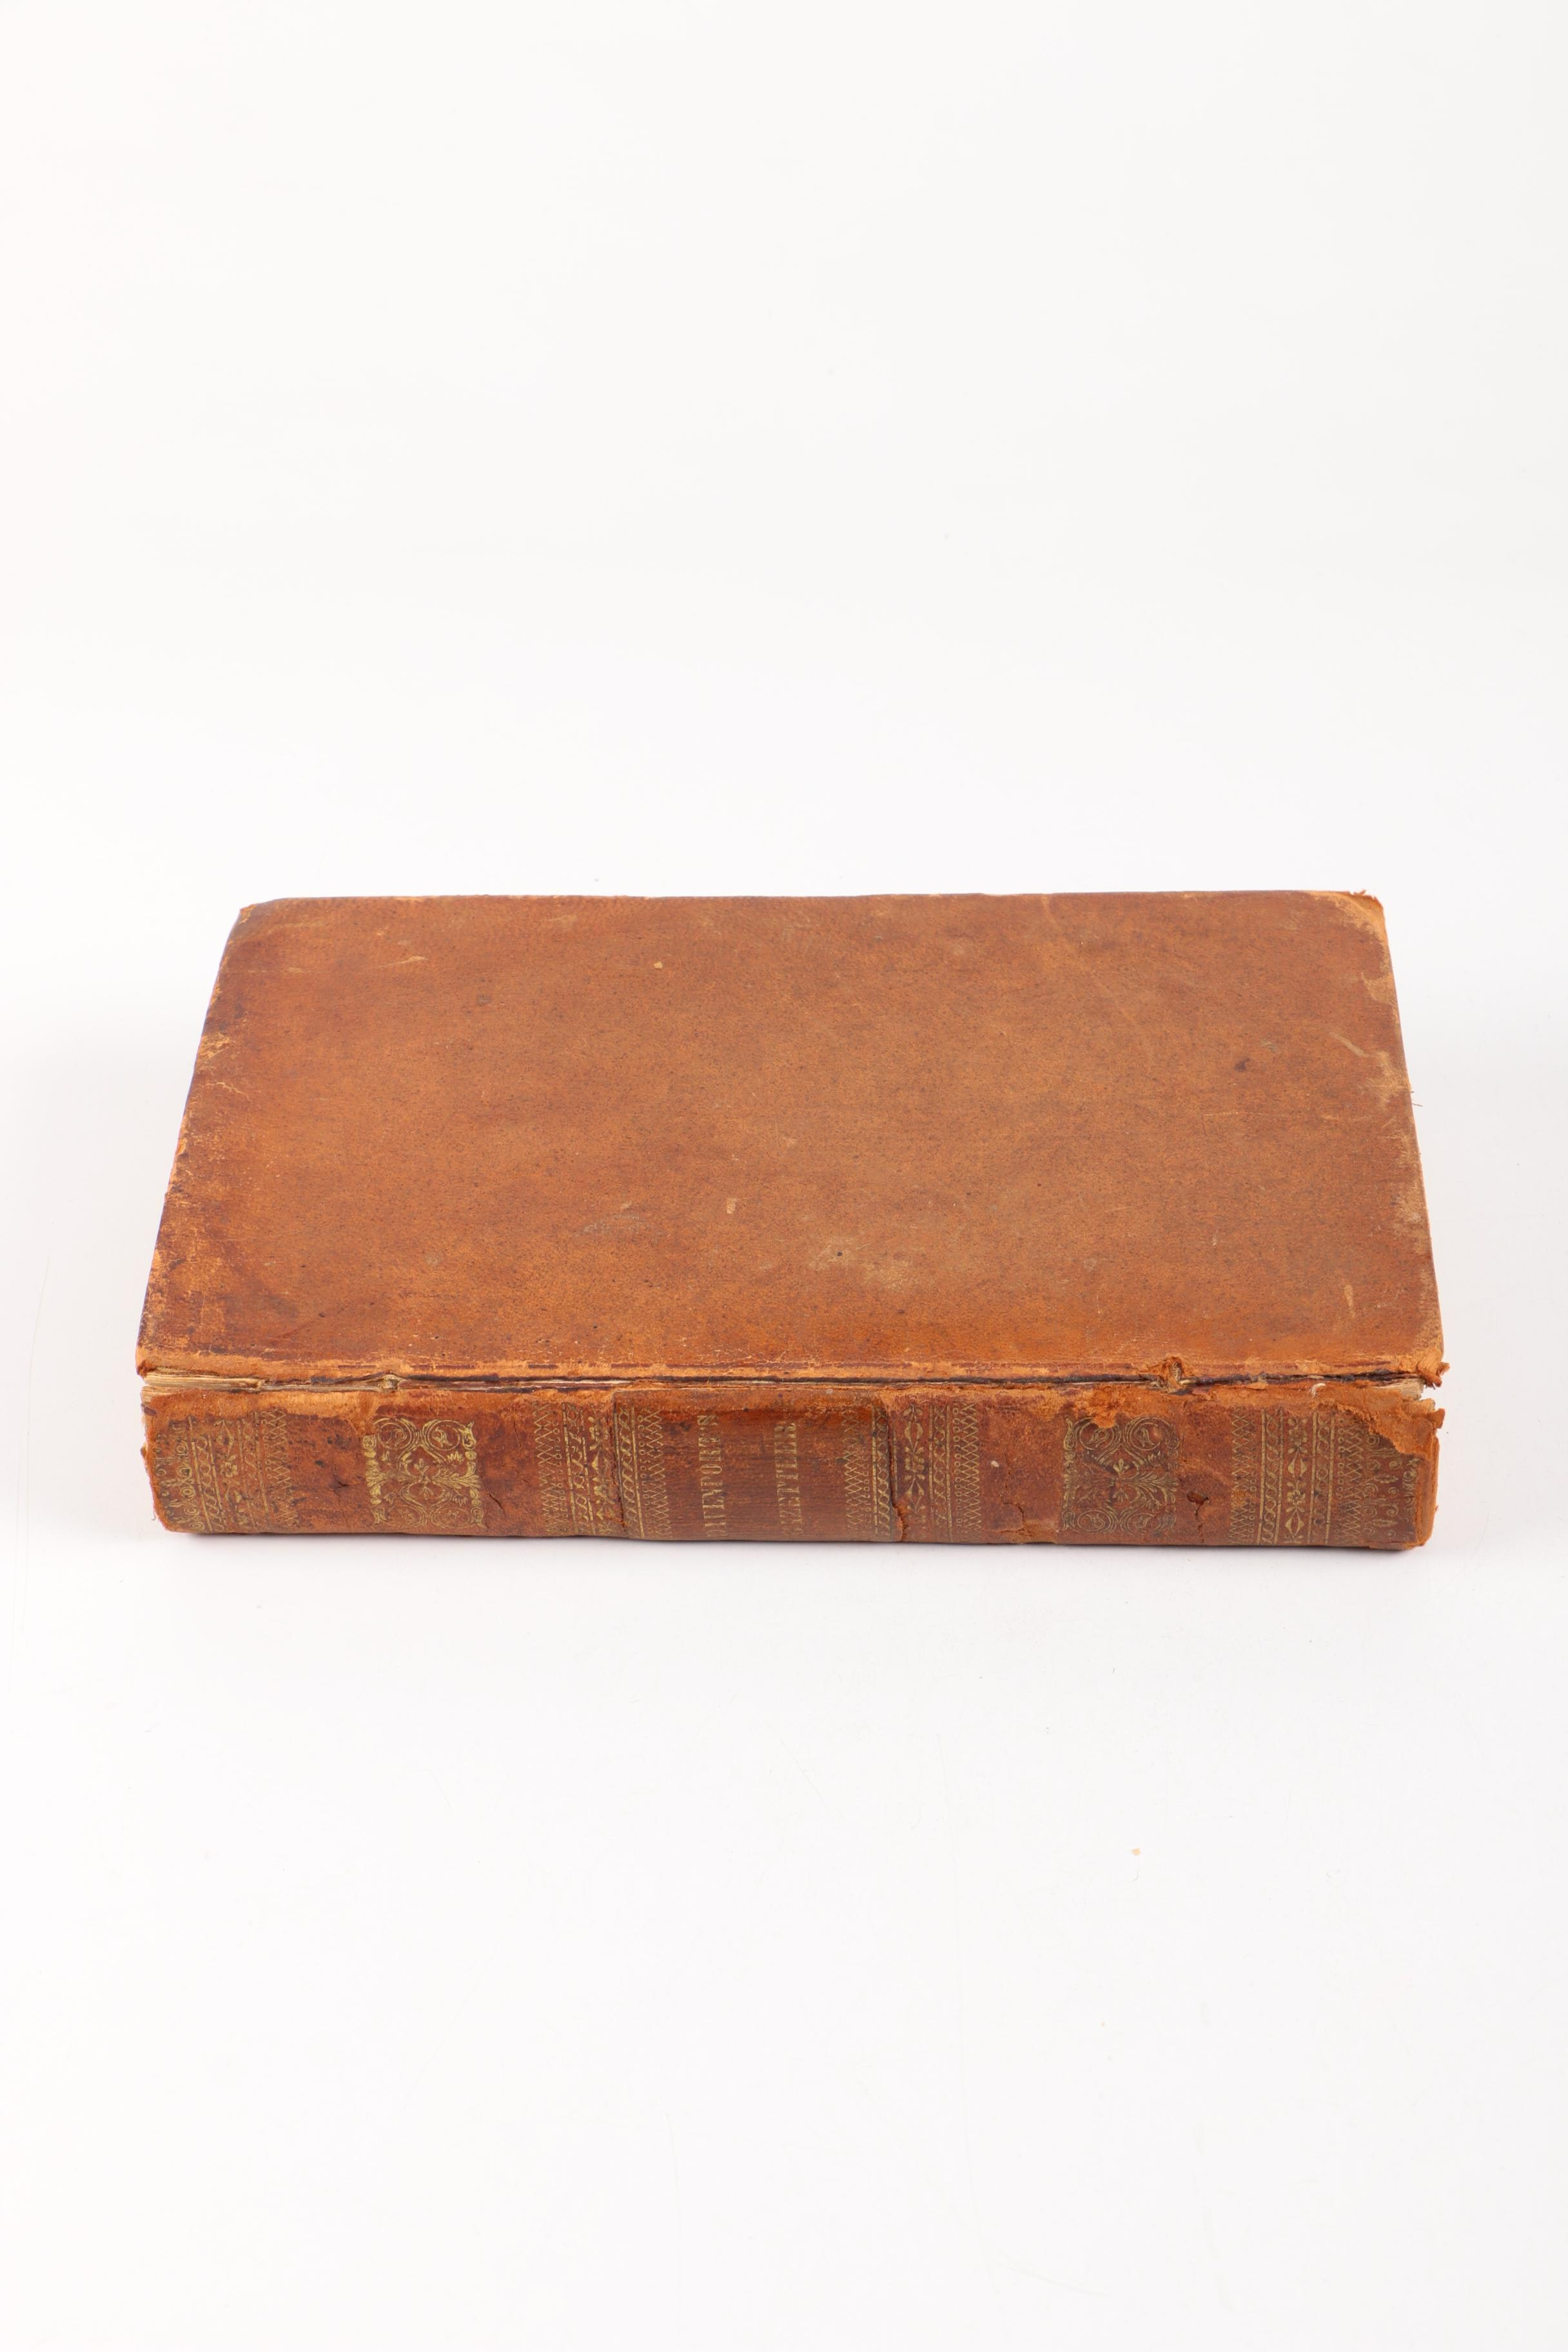 "1836 ""A New Gazetteer, Or Geographical Dictionary"" by Bishop Davenport"